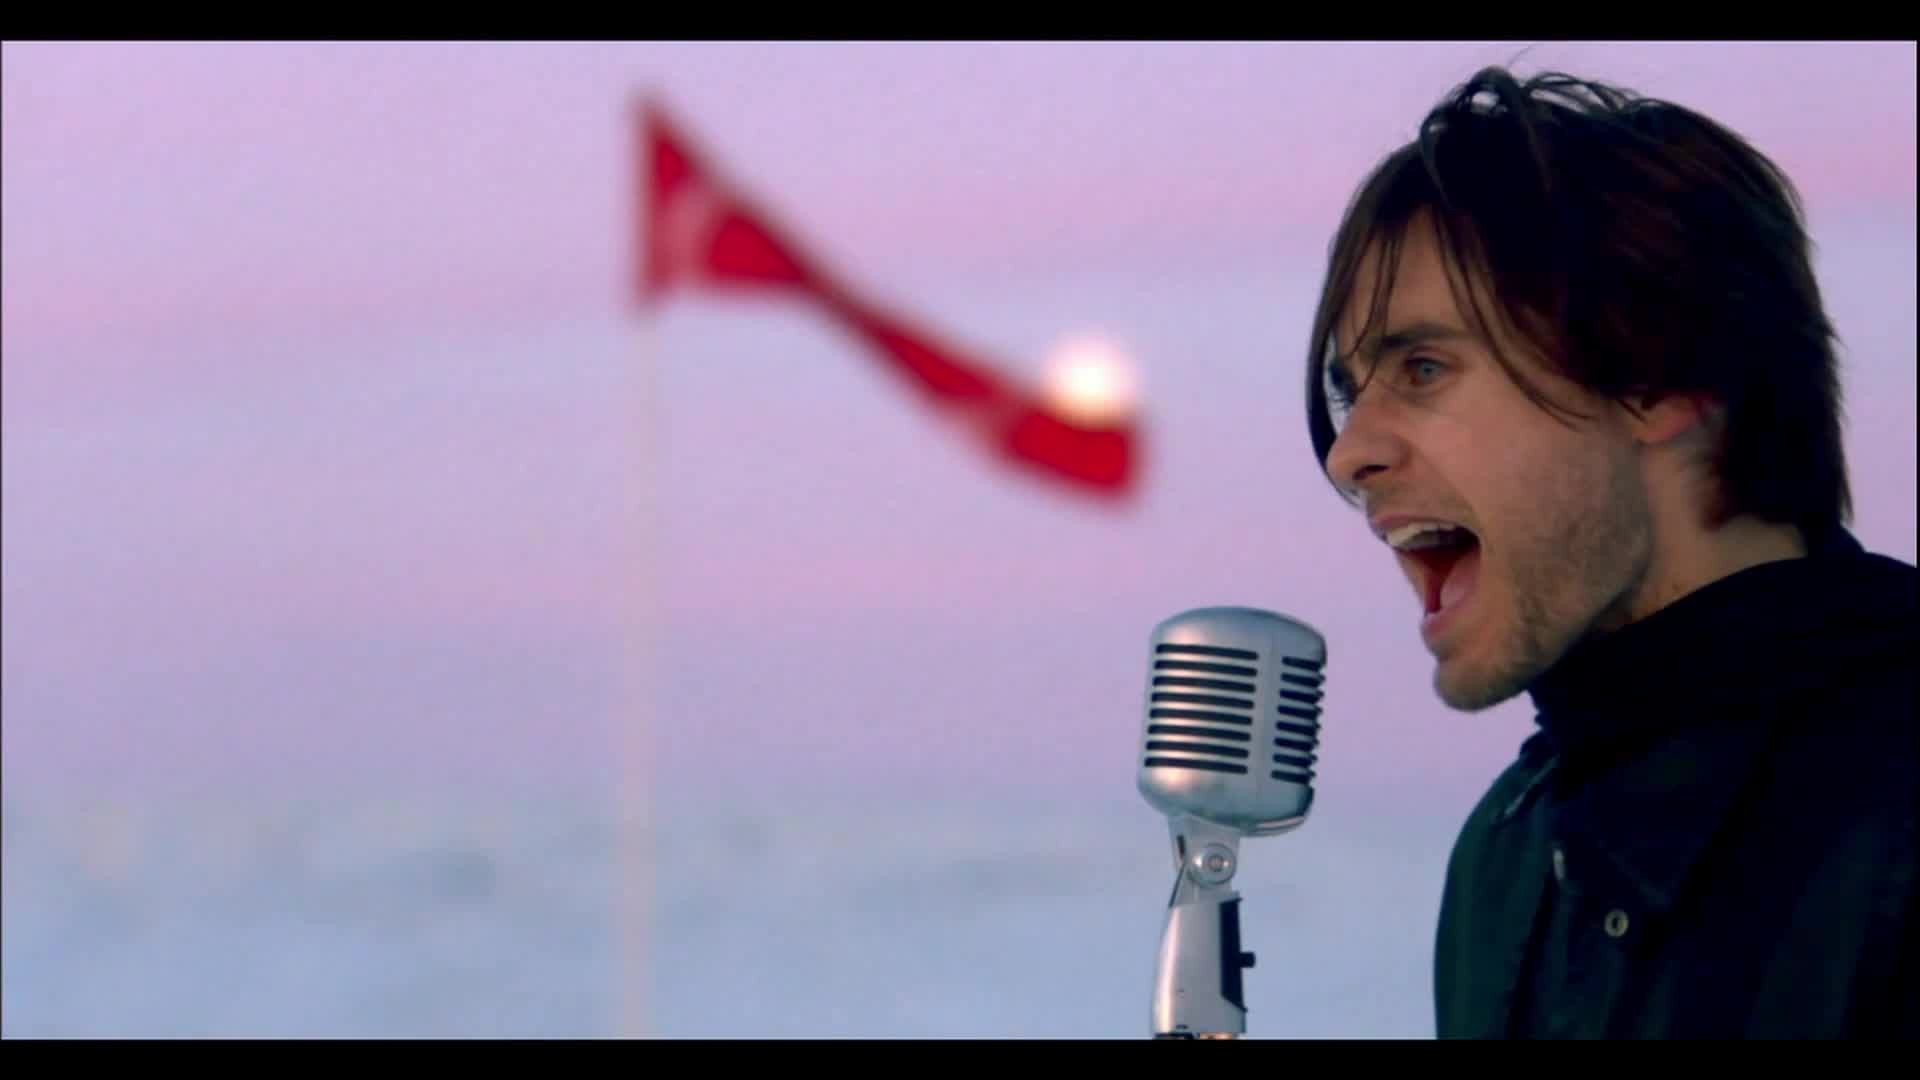 br /get enough of the one br /br /for мп3 музыка from yesterday 30 seconds to mars easy listening